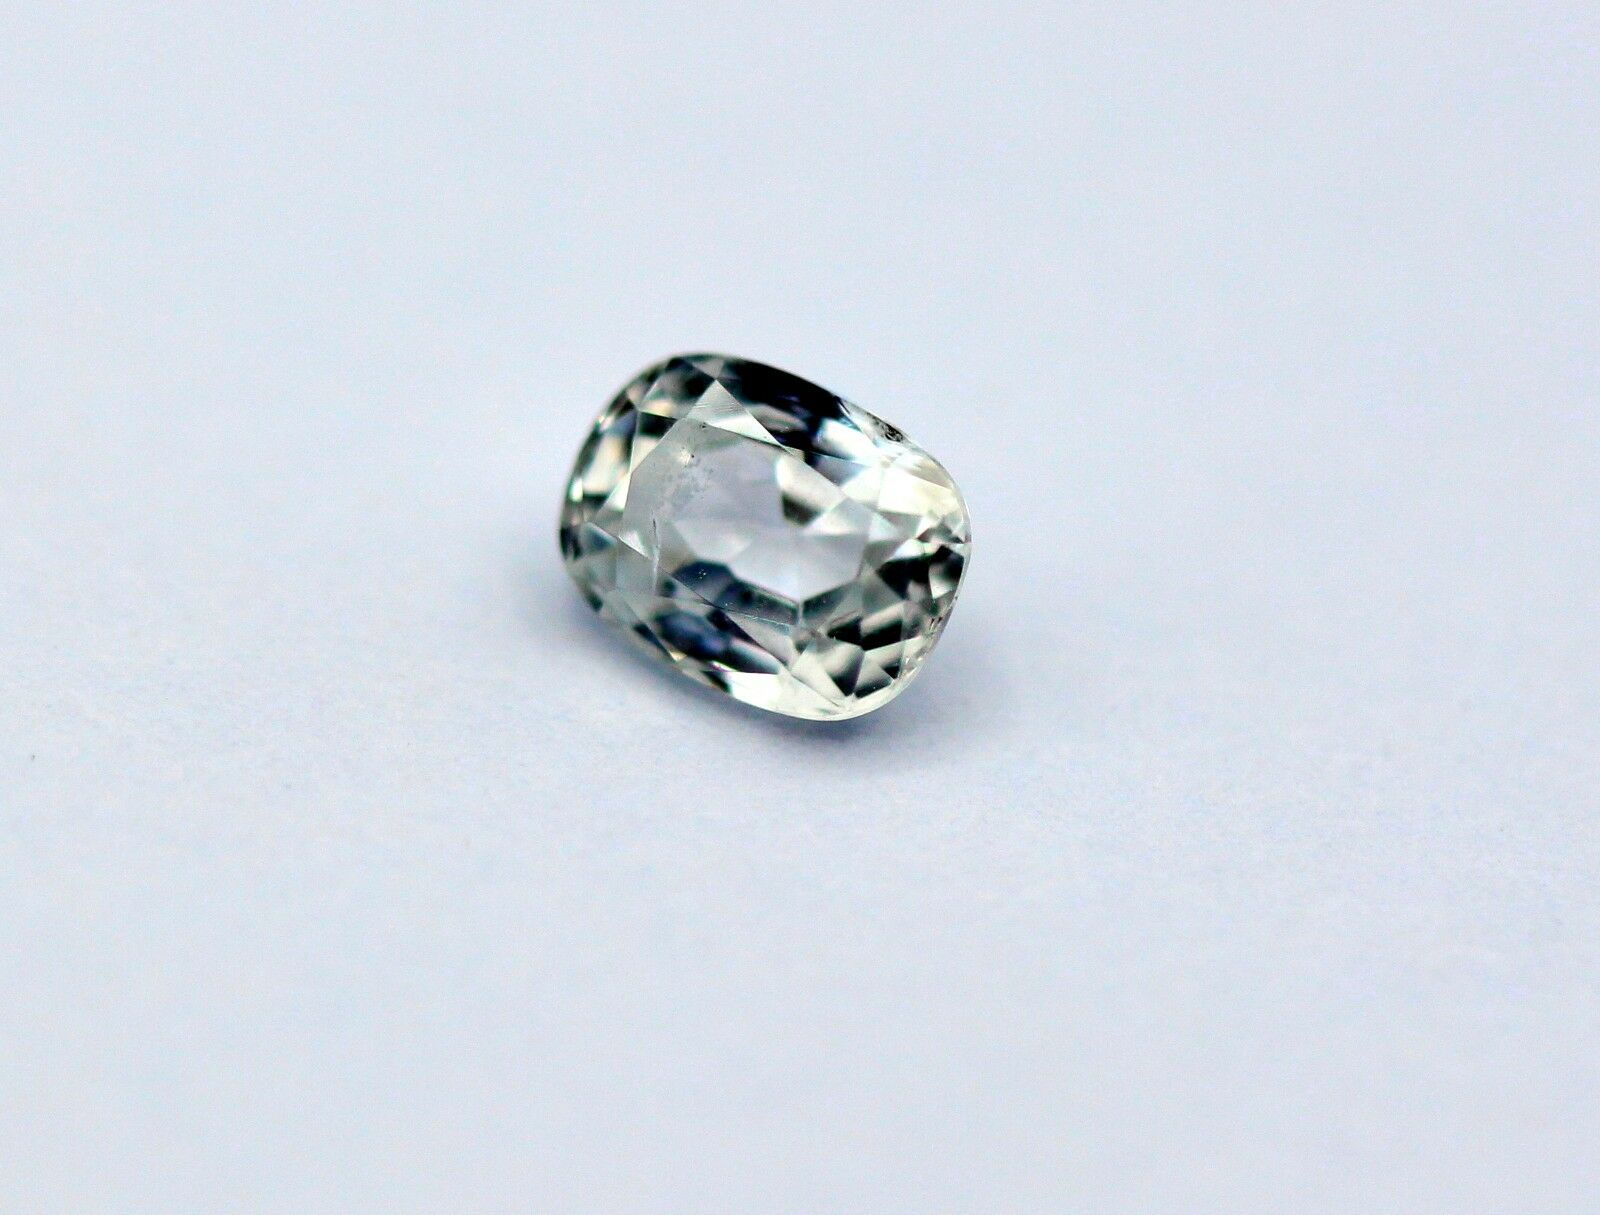 0.79 Ct White Sapphire Natural Ceylon Gemstone Colorless Oval Certified